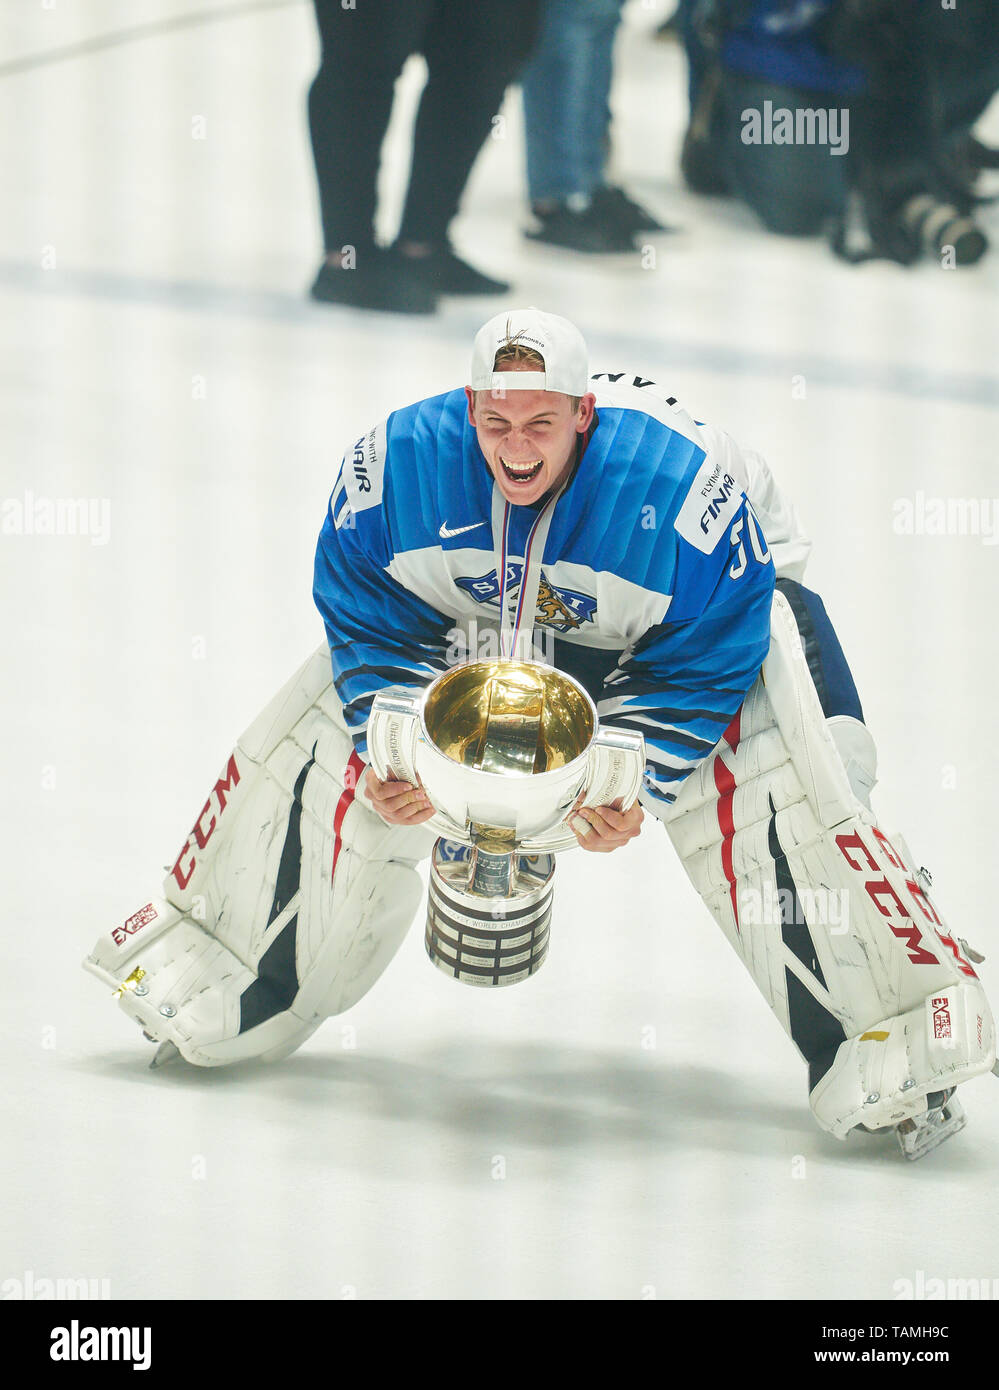 Bratislava, Slovakia. 26th May, 2019. Kevin LANKINEN, FIN 30 goalkeeper, Finland won the title and celebrate, Cheering, joy, emotions, celebrating, laughing, cheering, rejoice, tearing up the arms, clenching the fist, celebrate, celebration, Torjubel, CANADA - FINLAND 1-3 Kanada - Finnland FINAL IIHF ICE HOCKEY WORLD CHAMPIONSHIPS in Bratislava, Slovakia, Slowakei, May 26, 2019, Season 2018/2019, Credit: Peter Schatz/Alamy Live News - Stock Image